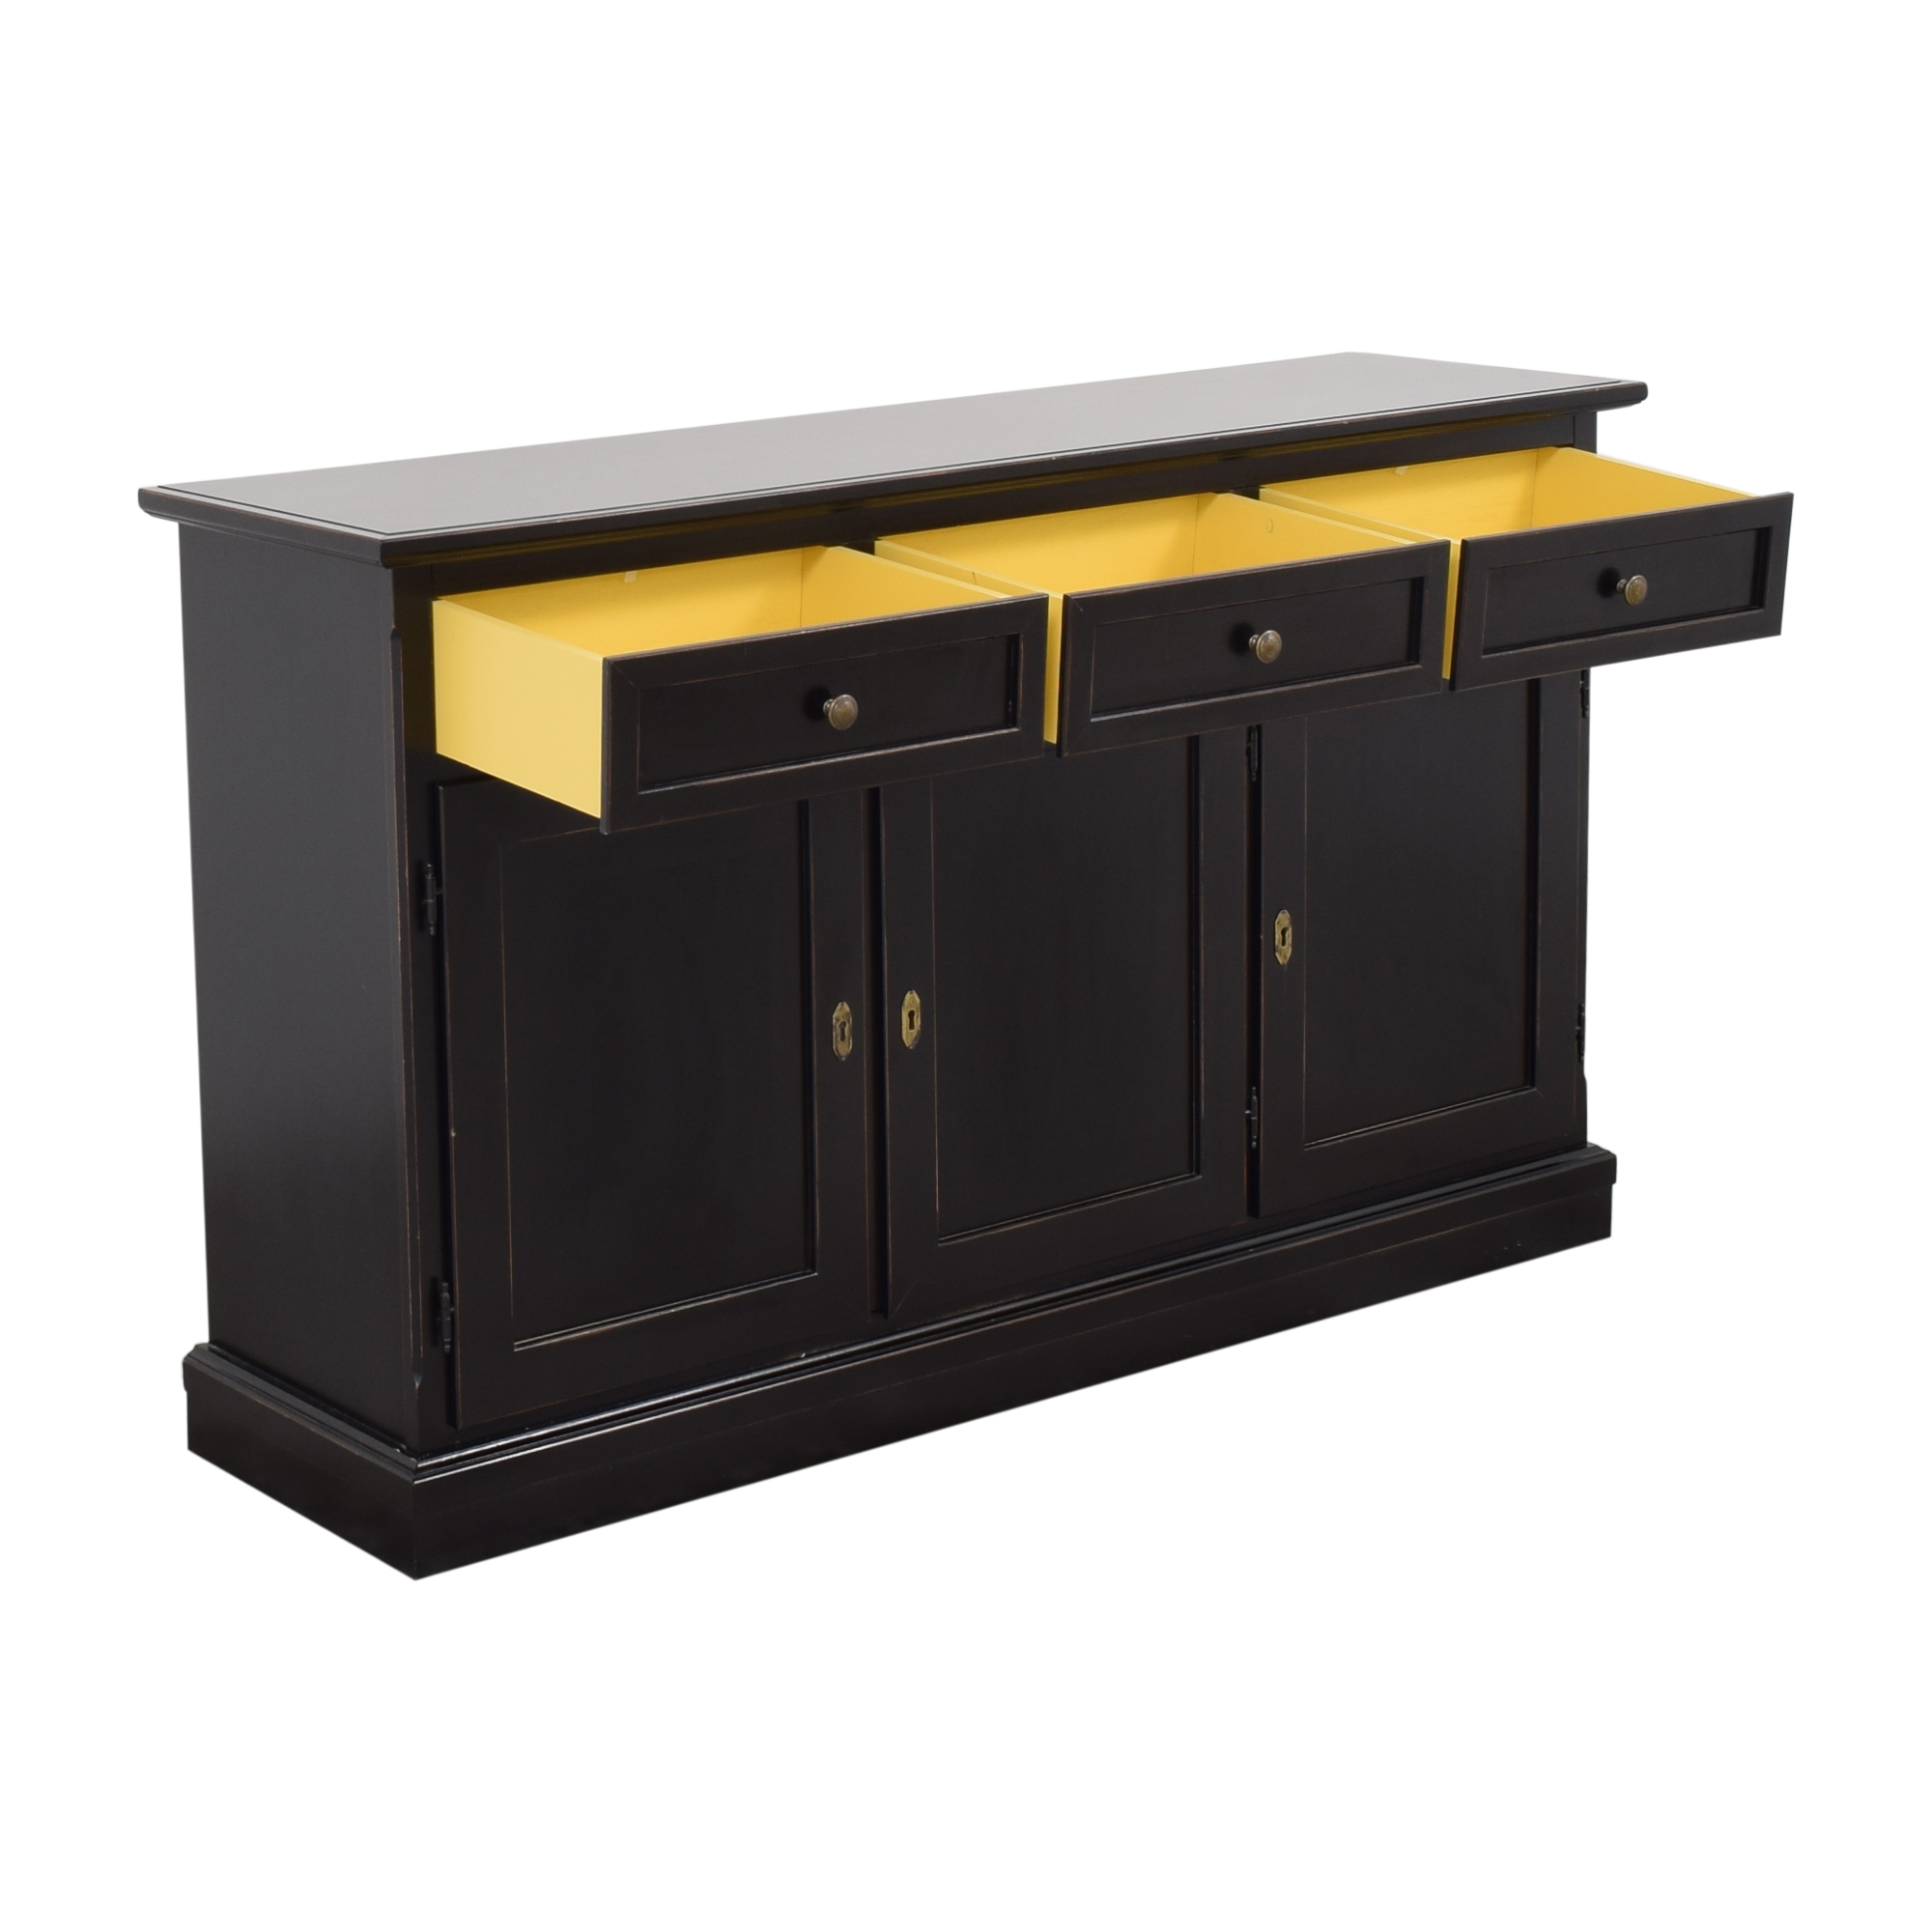 Crate & Barrel Crate & Barrel Pranzo II Sideboard